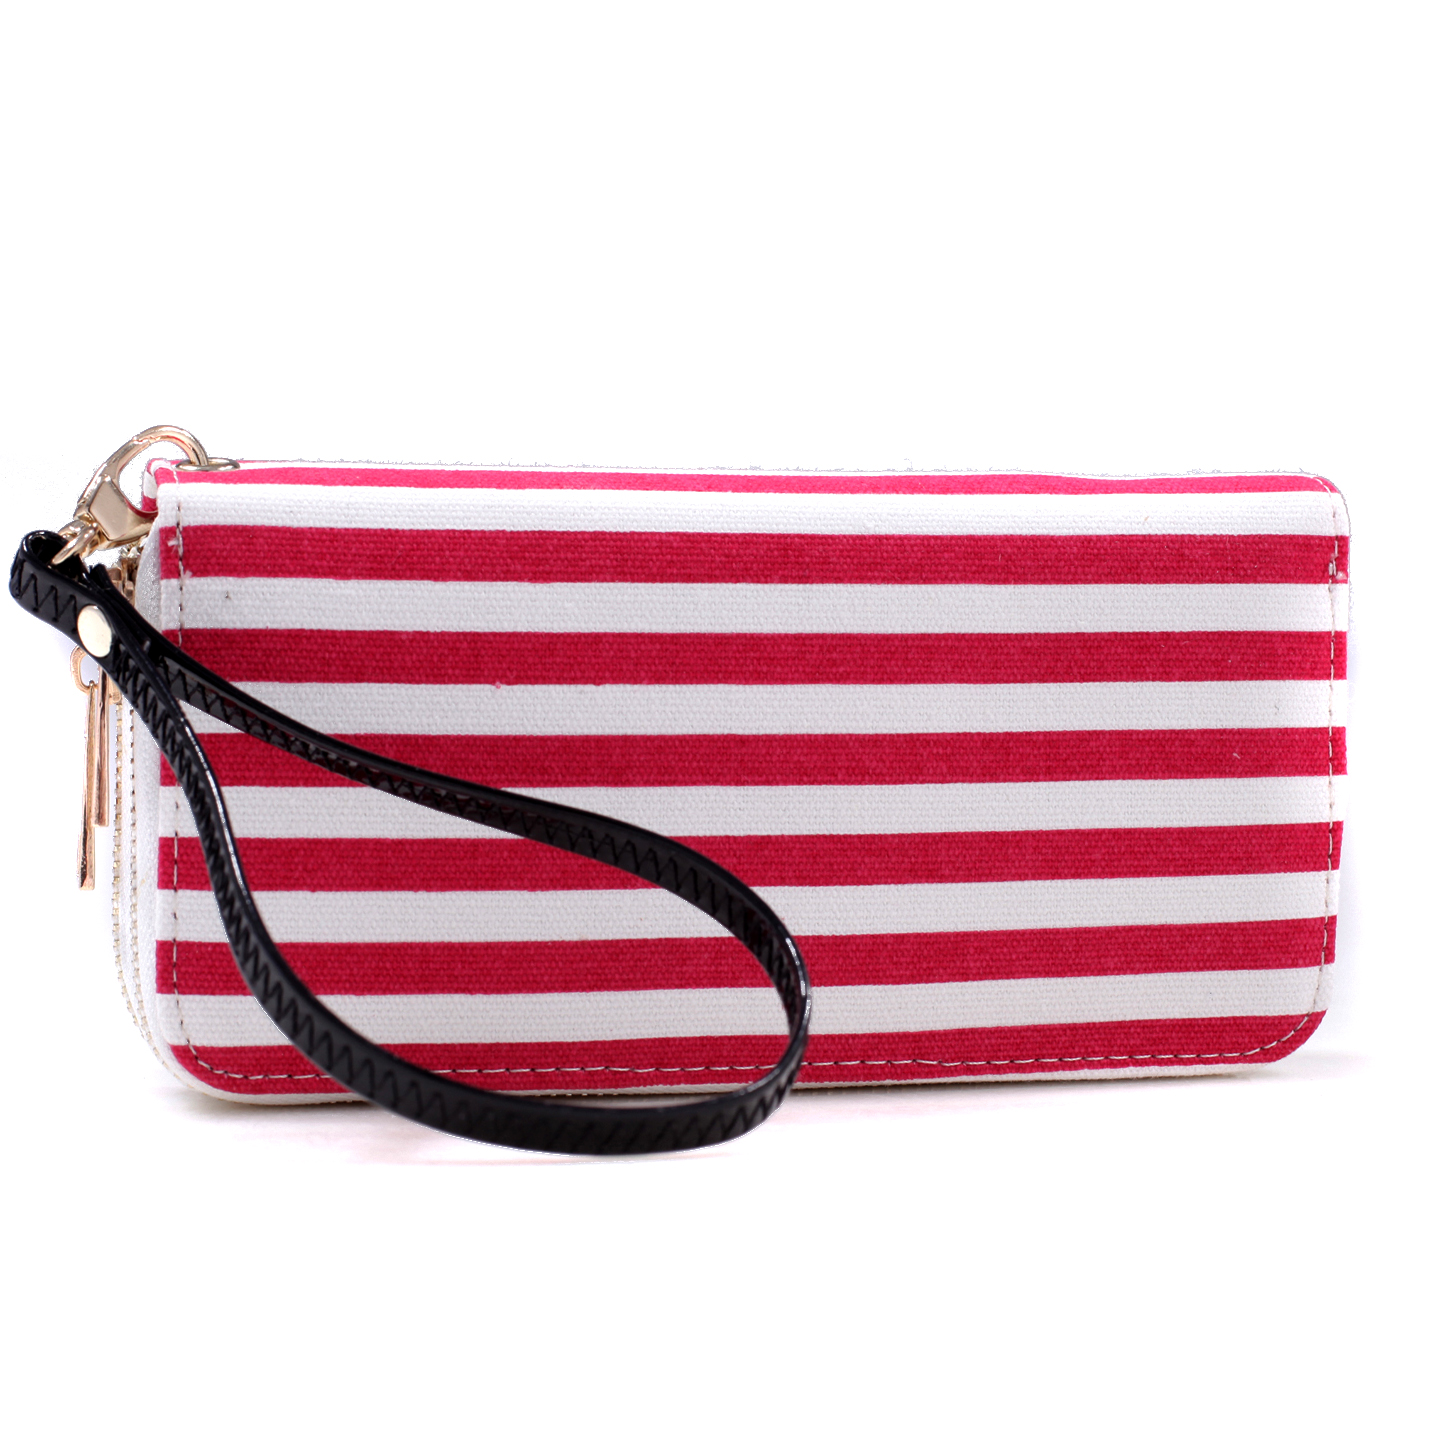 Double Zip-Around Canvas Wallet With Detachable Wristlet Strap